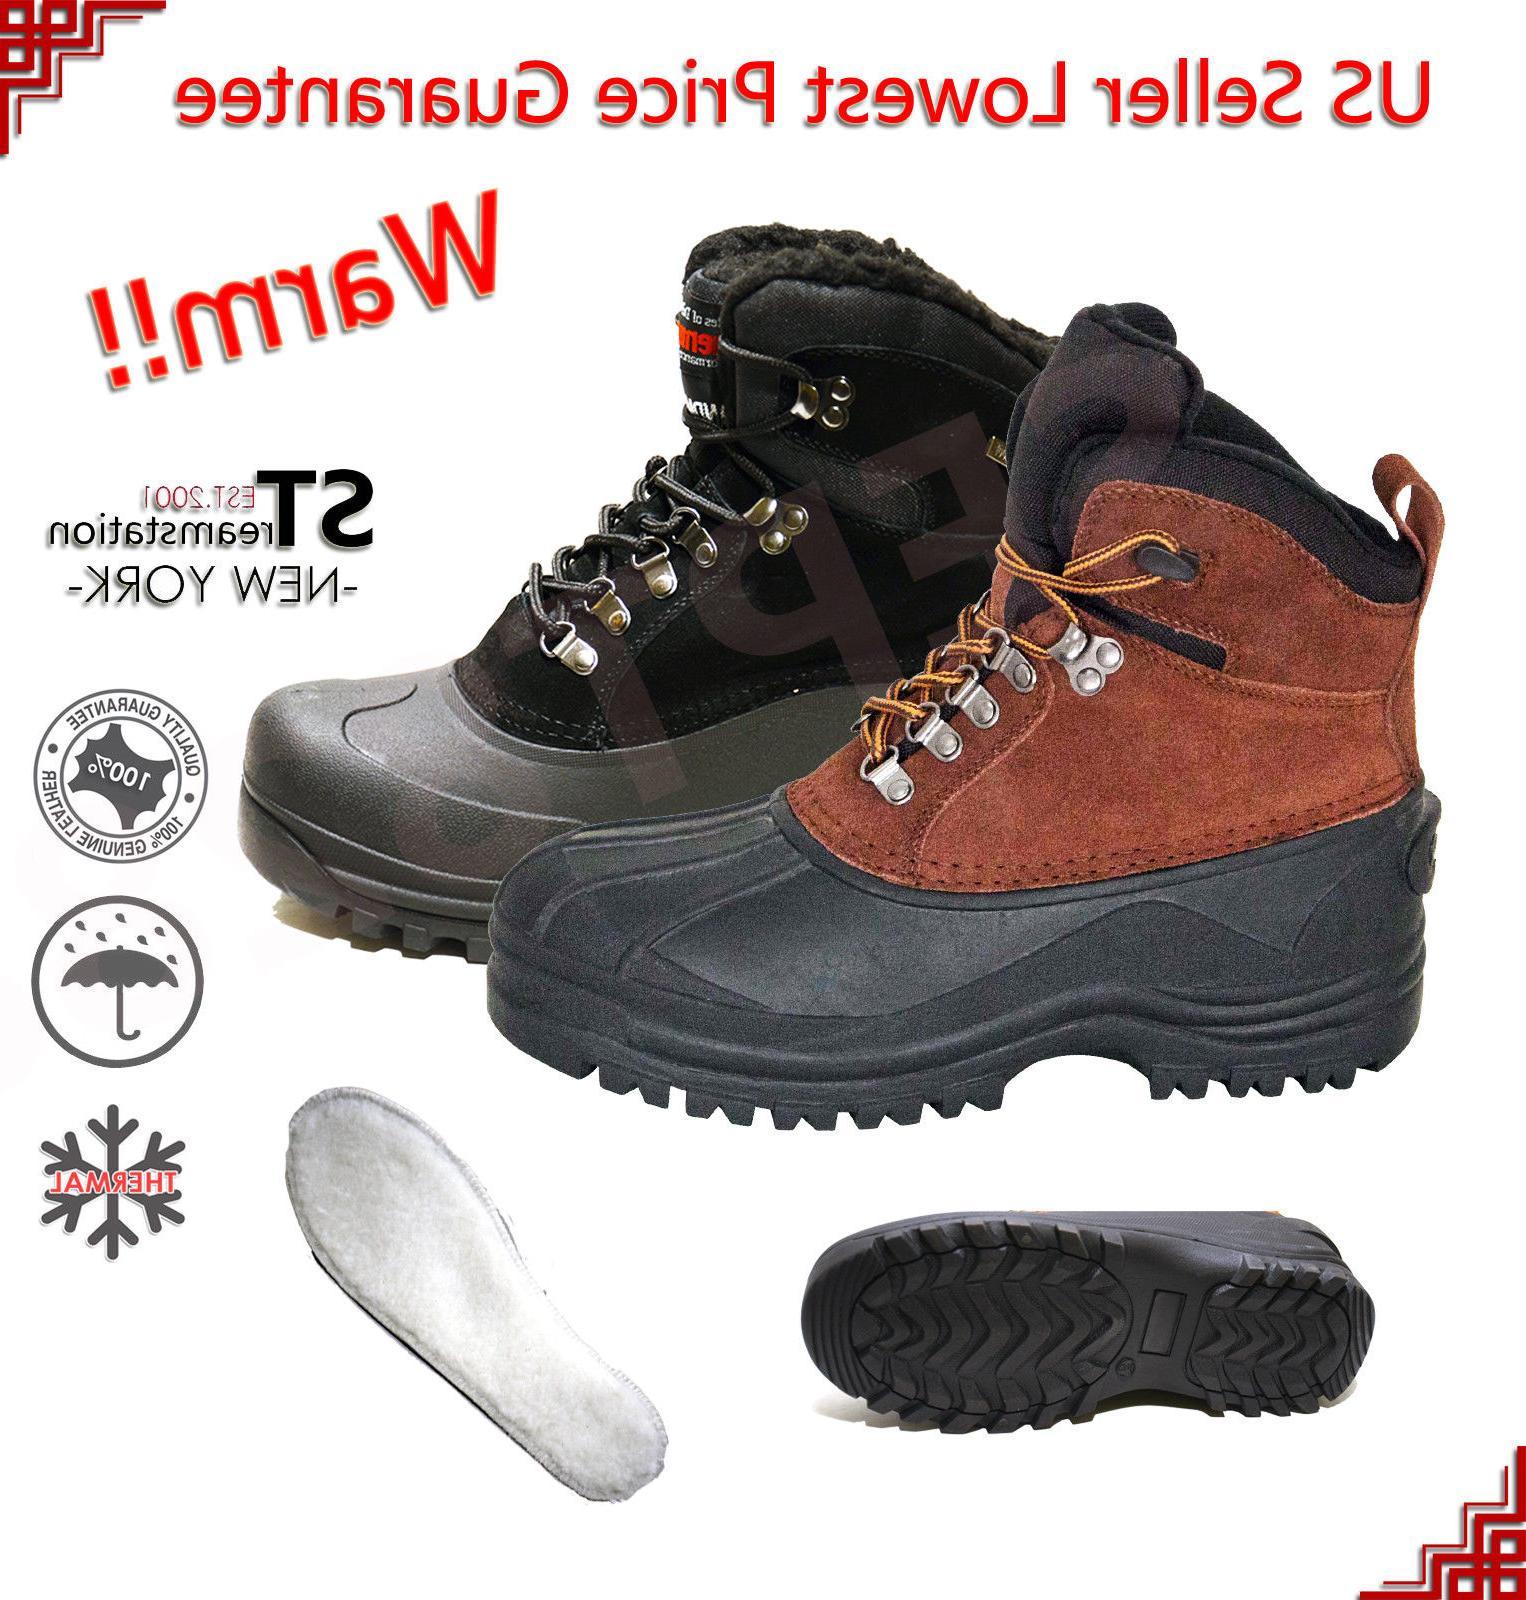 lm men s insulated winter snow boots